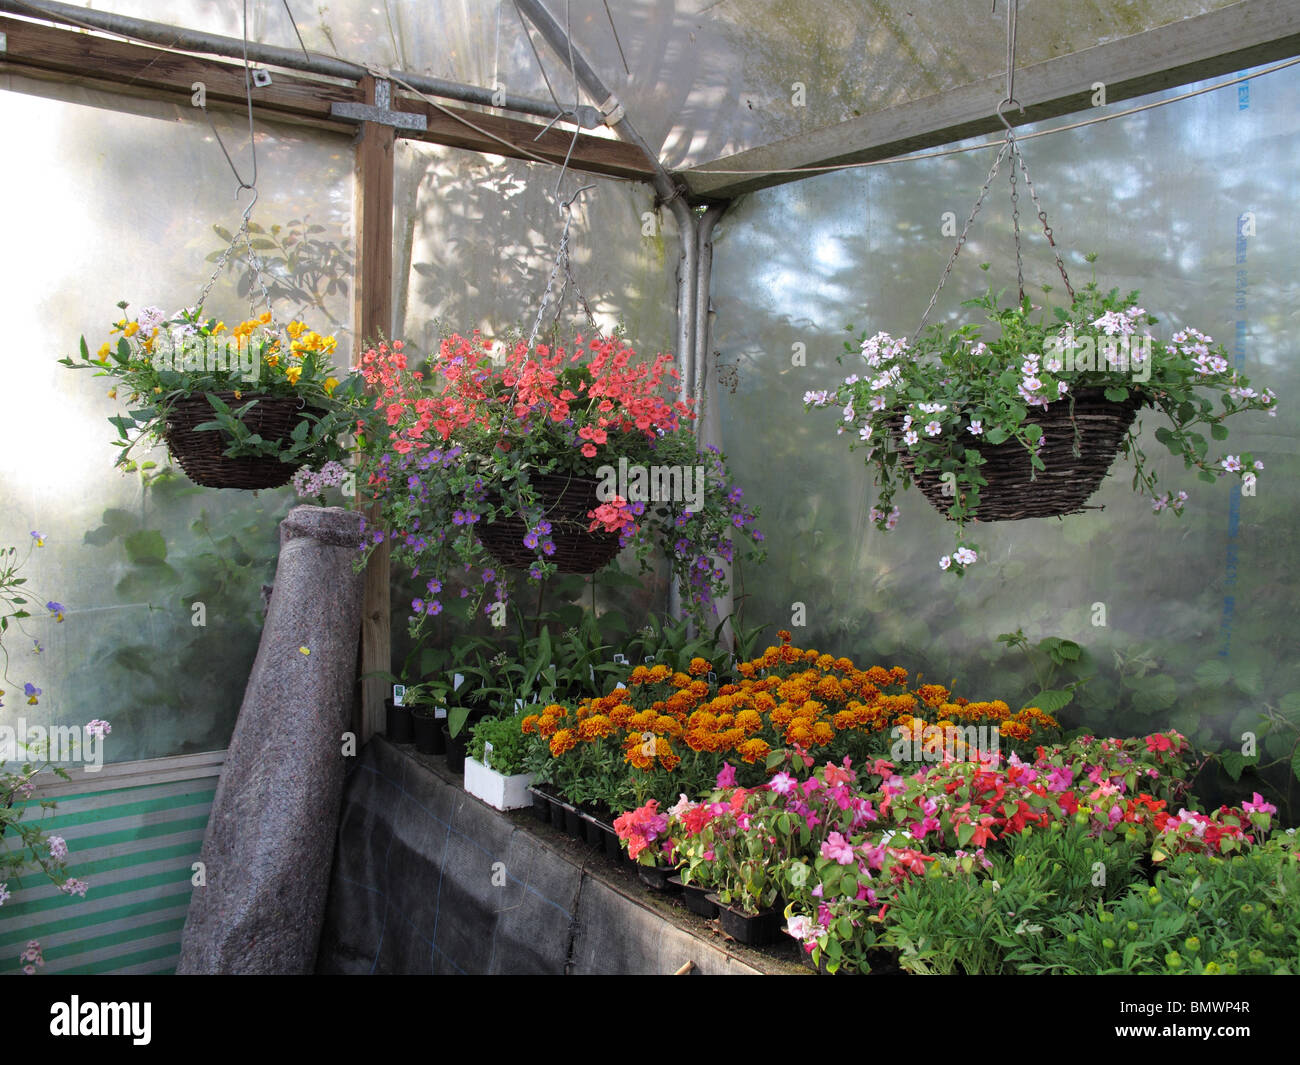 Hanging baskets and bedding flowers - Stock Image